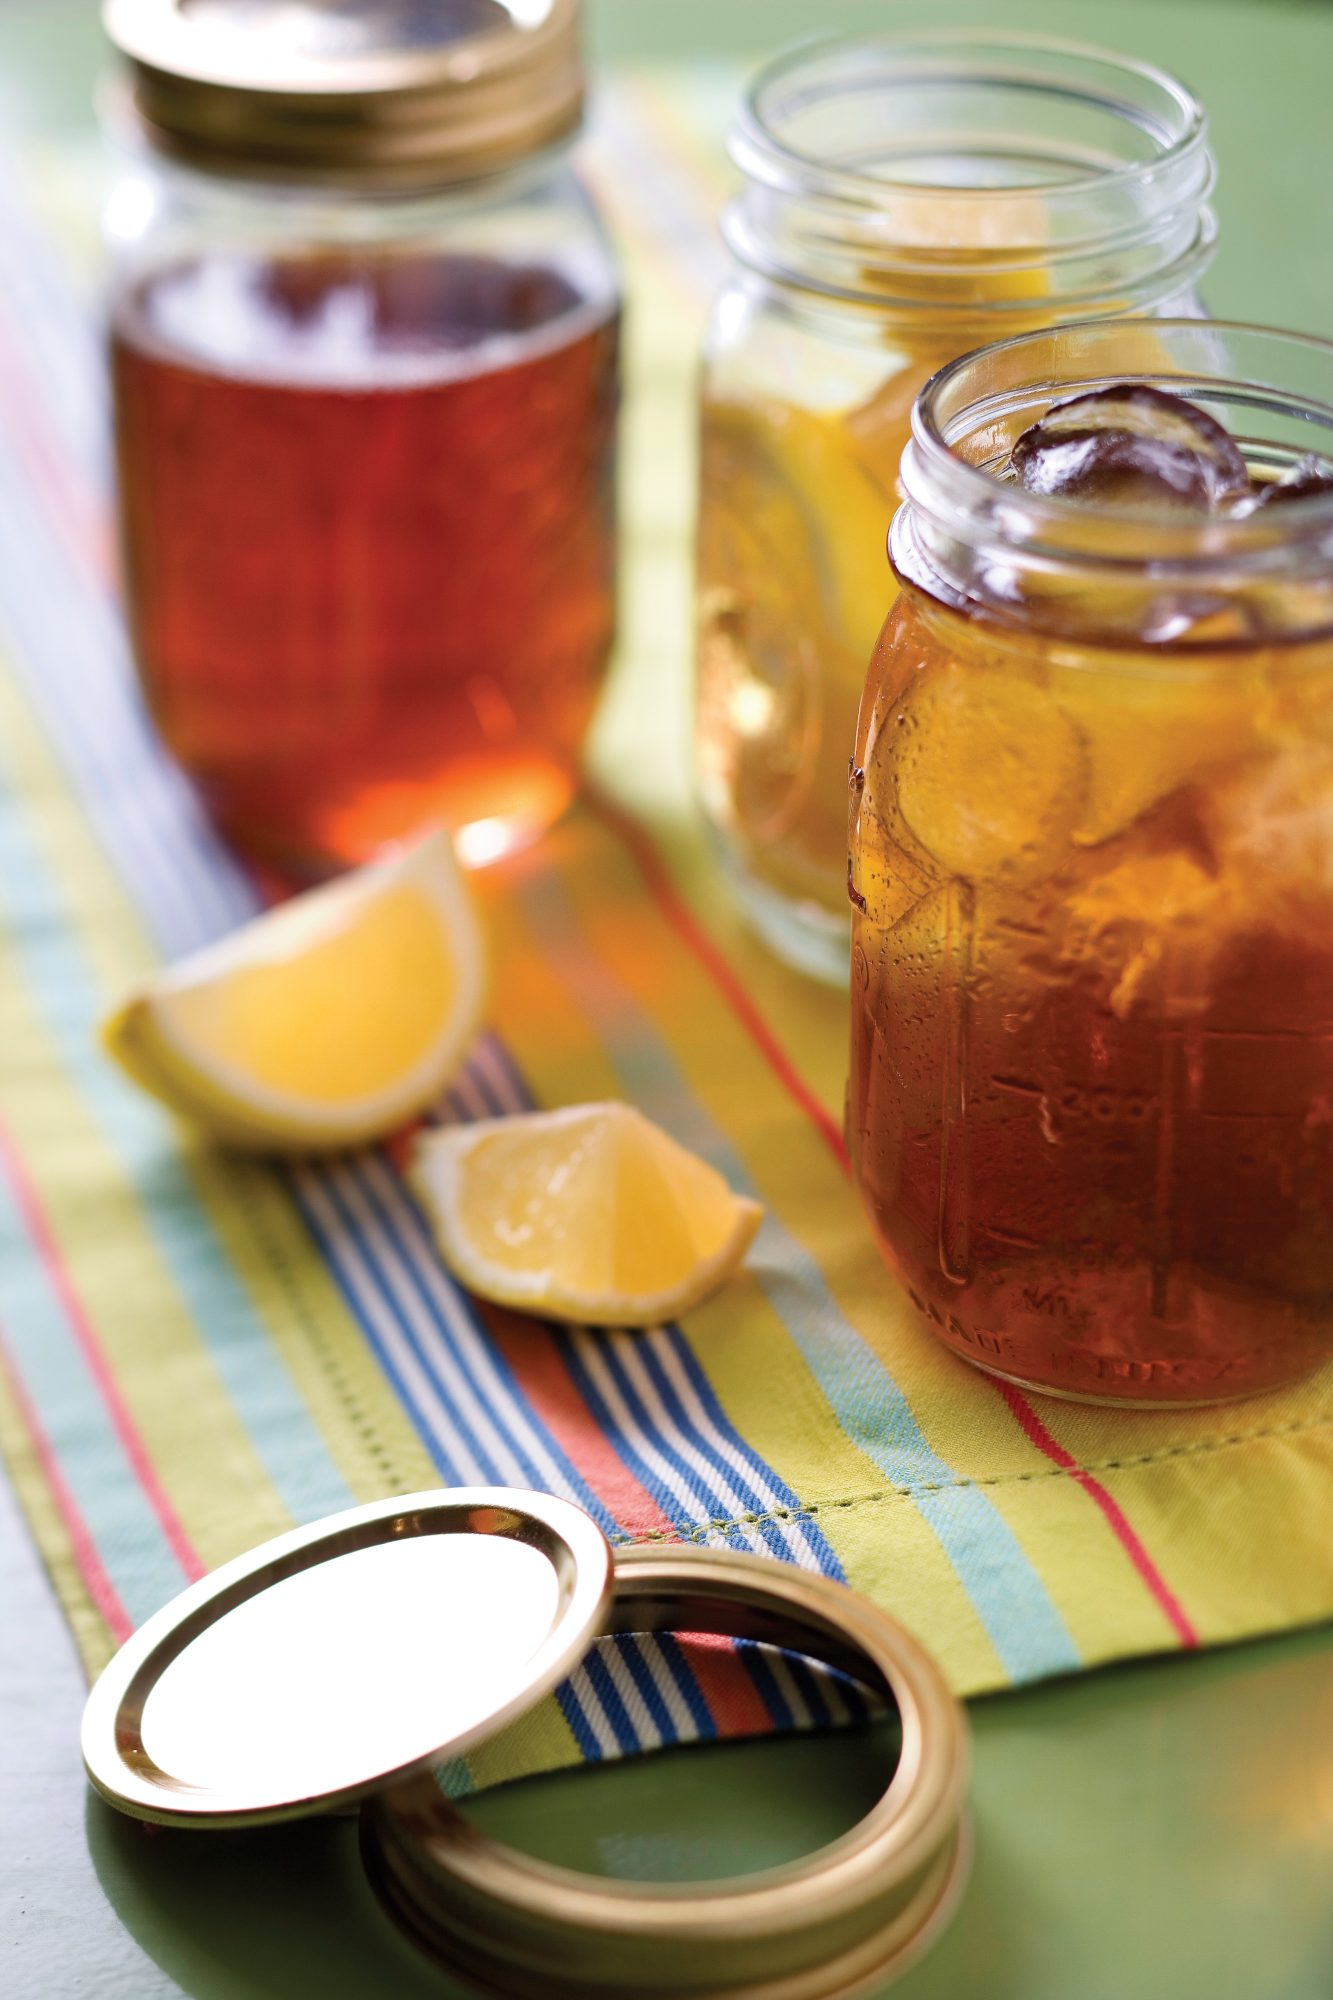 From Our Kitchen: Marvelous Mason Jars